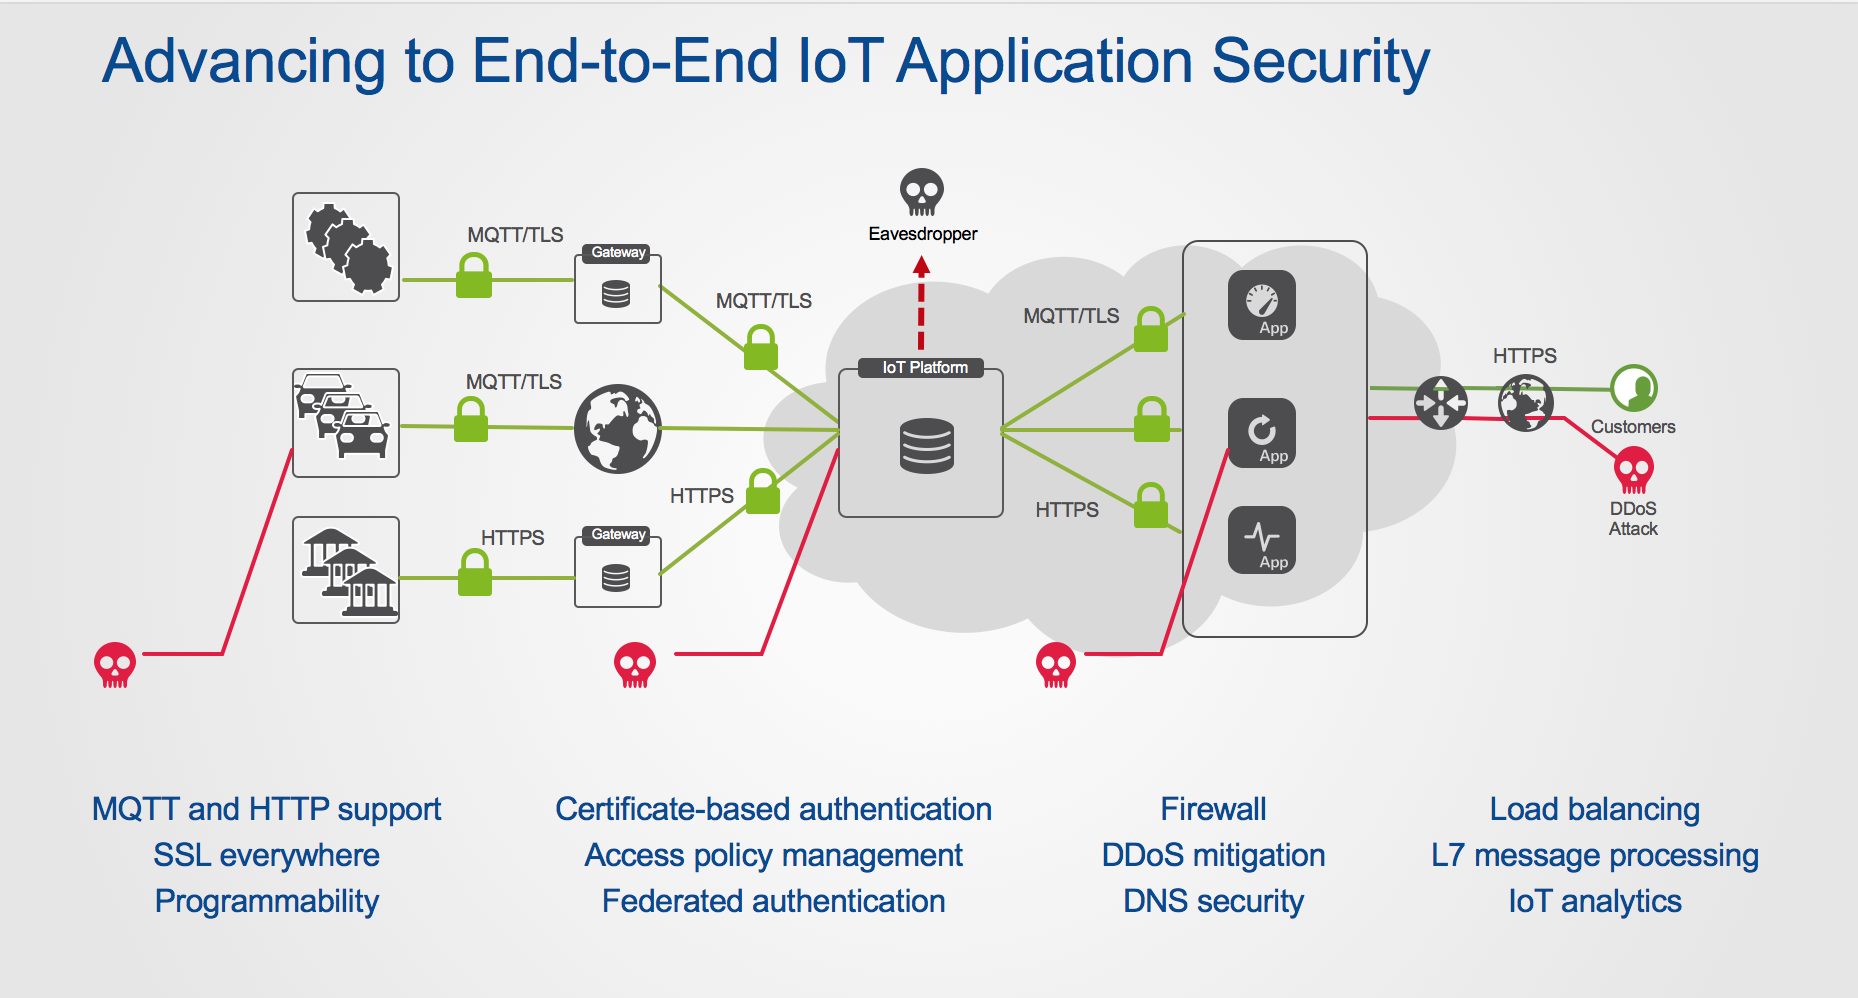 IoT Message Protocols: The Next Security Challenge for